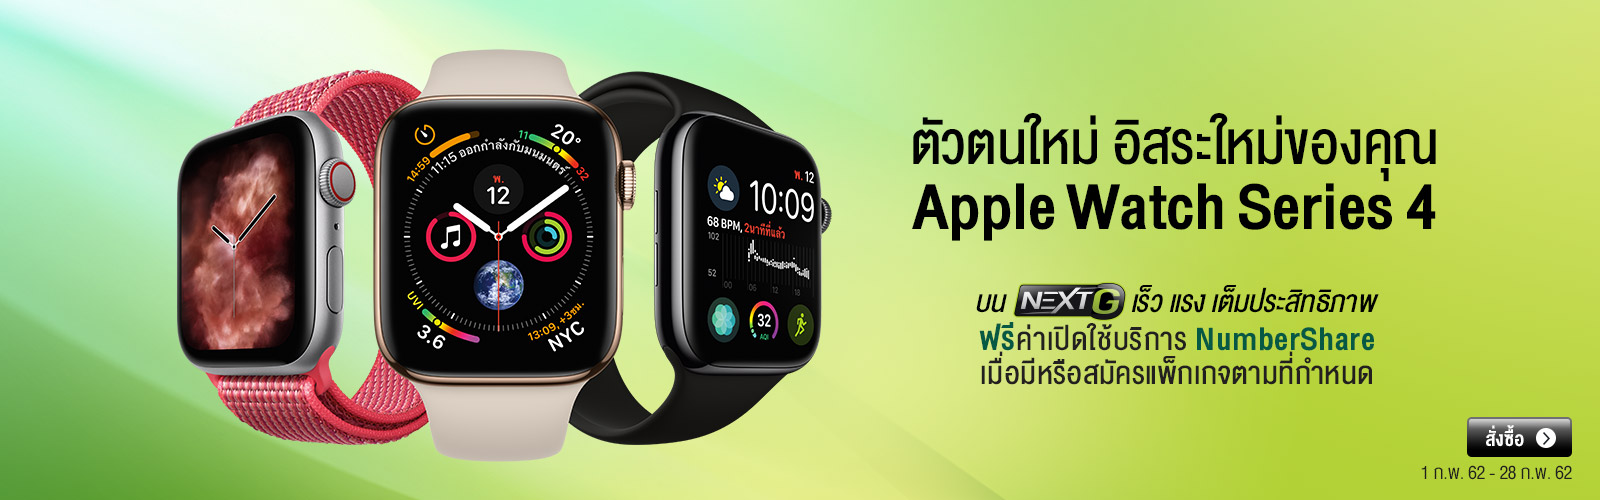 Apple Watch 4_TH_Feb